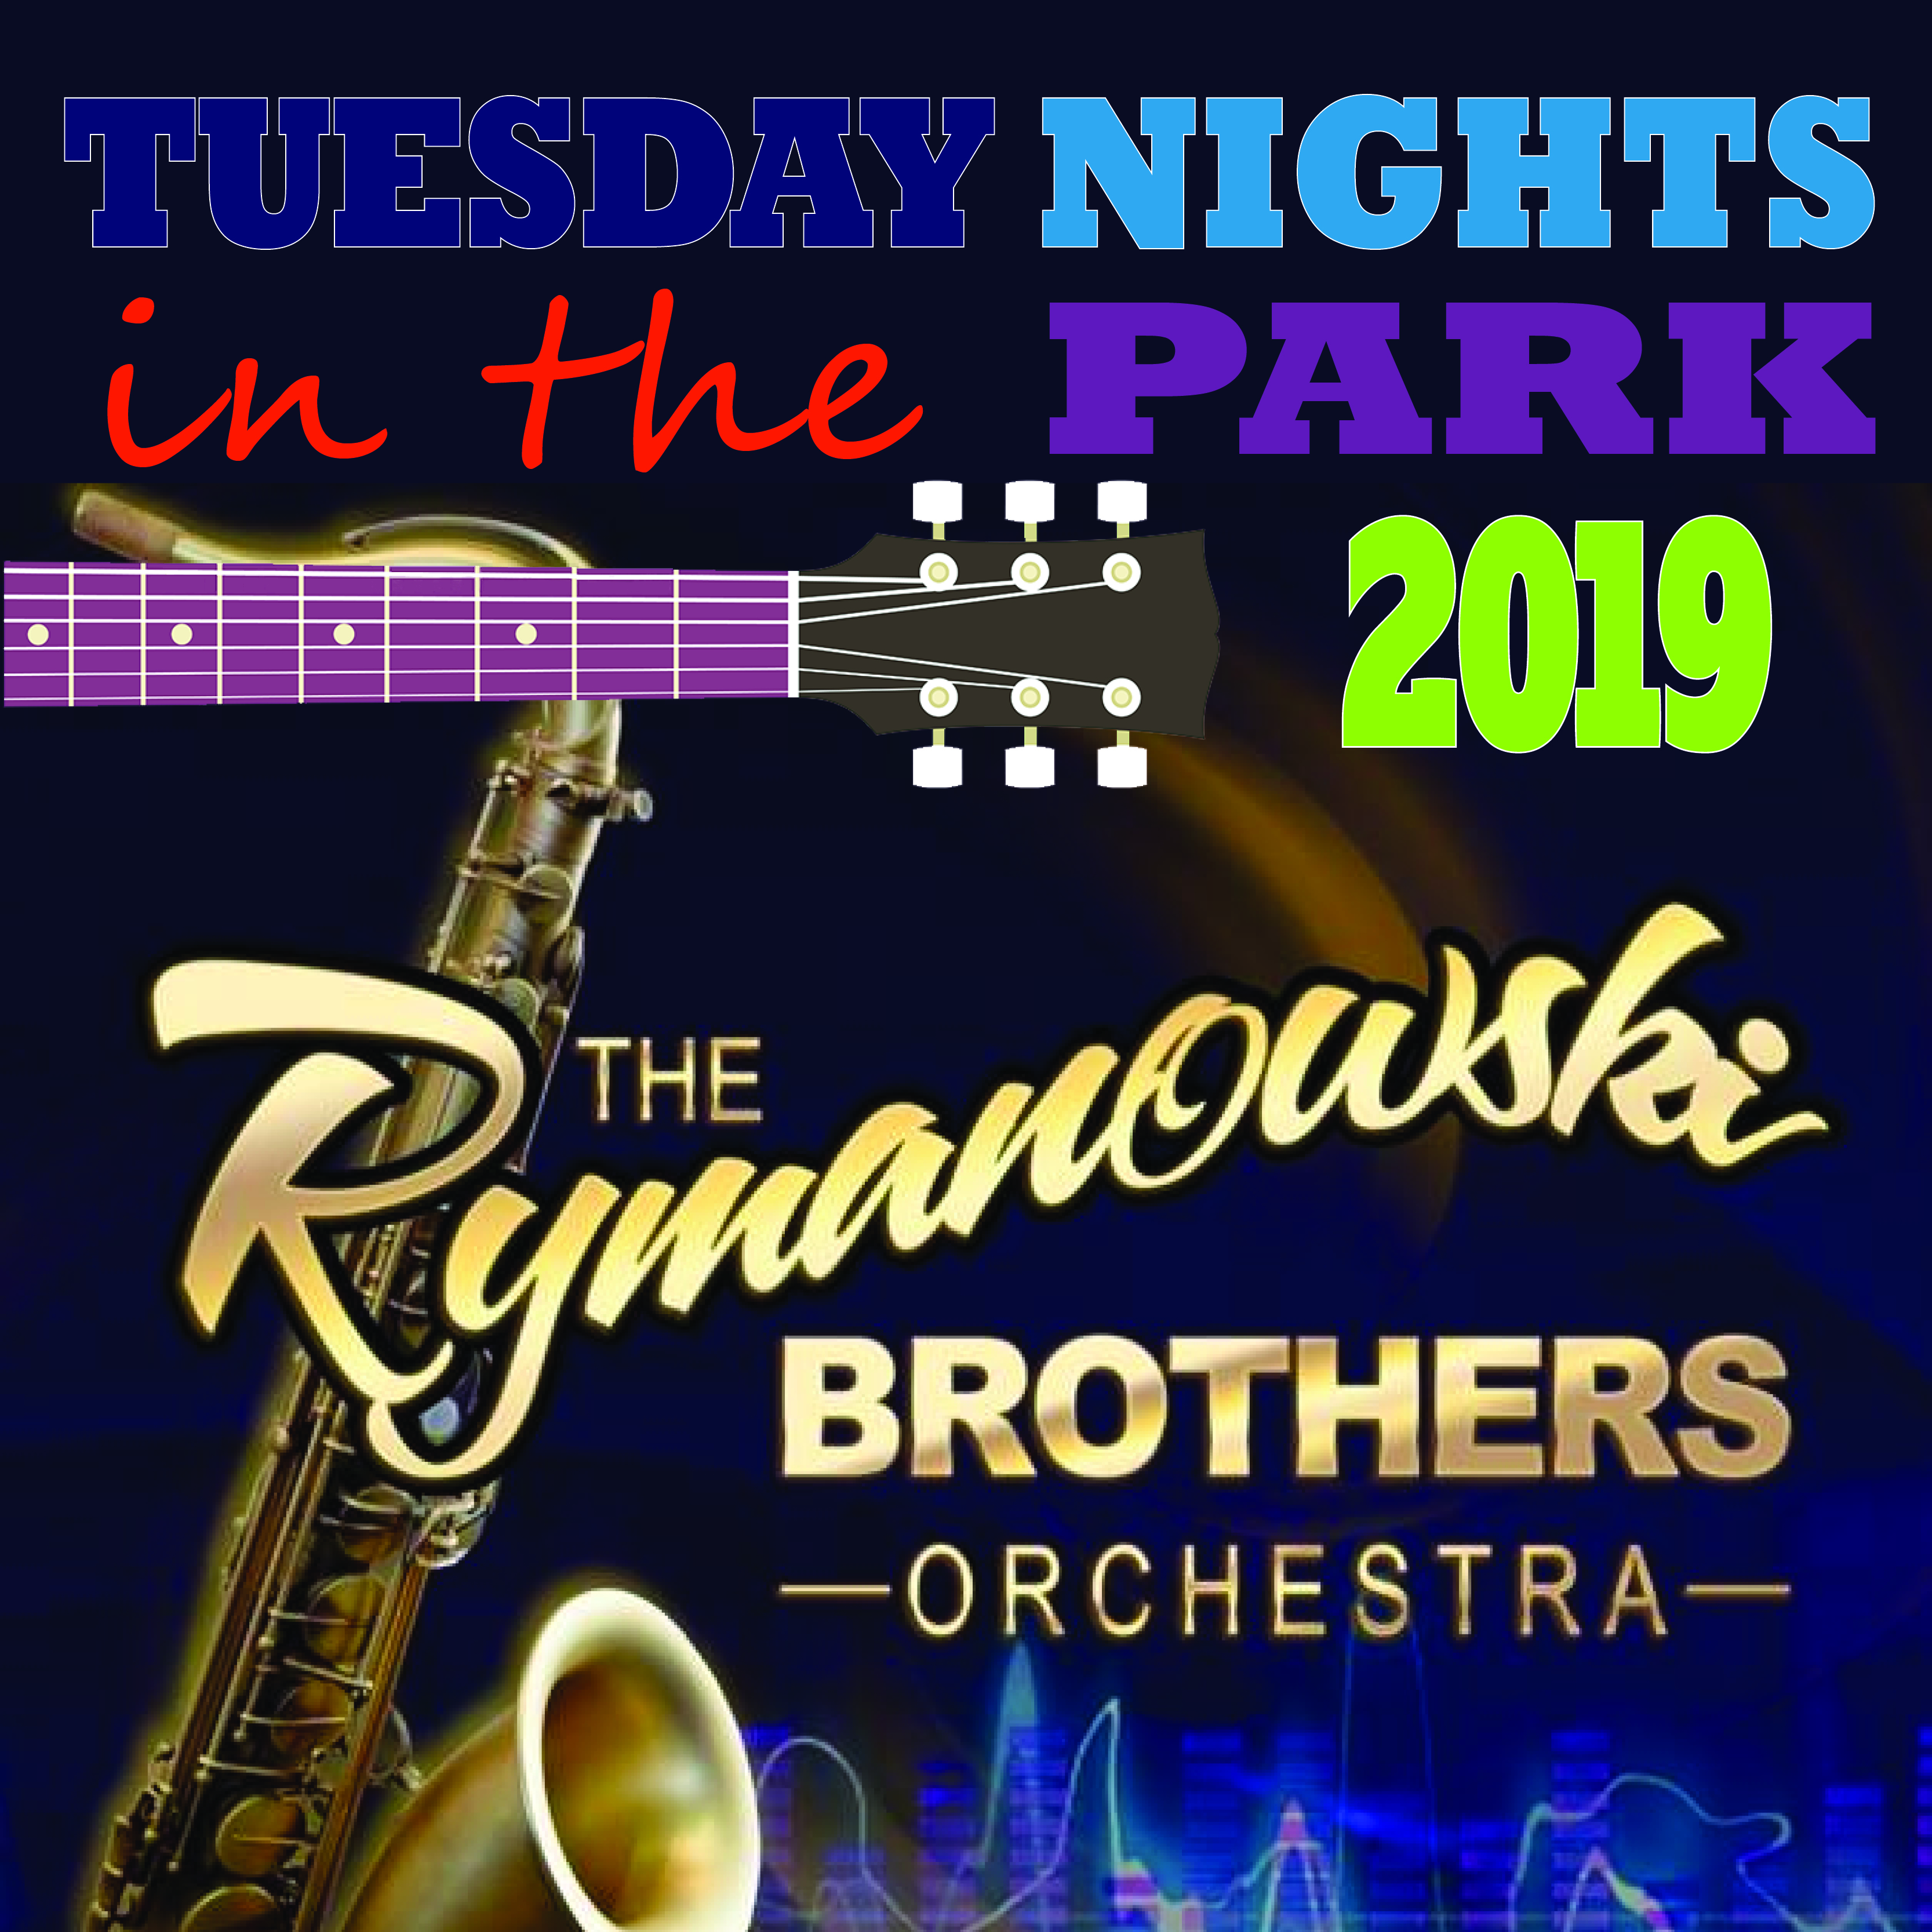 Tuesday Nights in the Park Concert - The Rymanowski Brothers @ Cook Park, Frank A Leak Amphitheater for the Arts